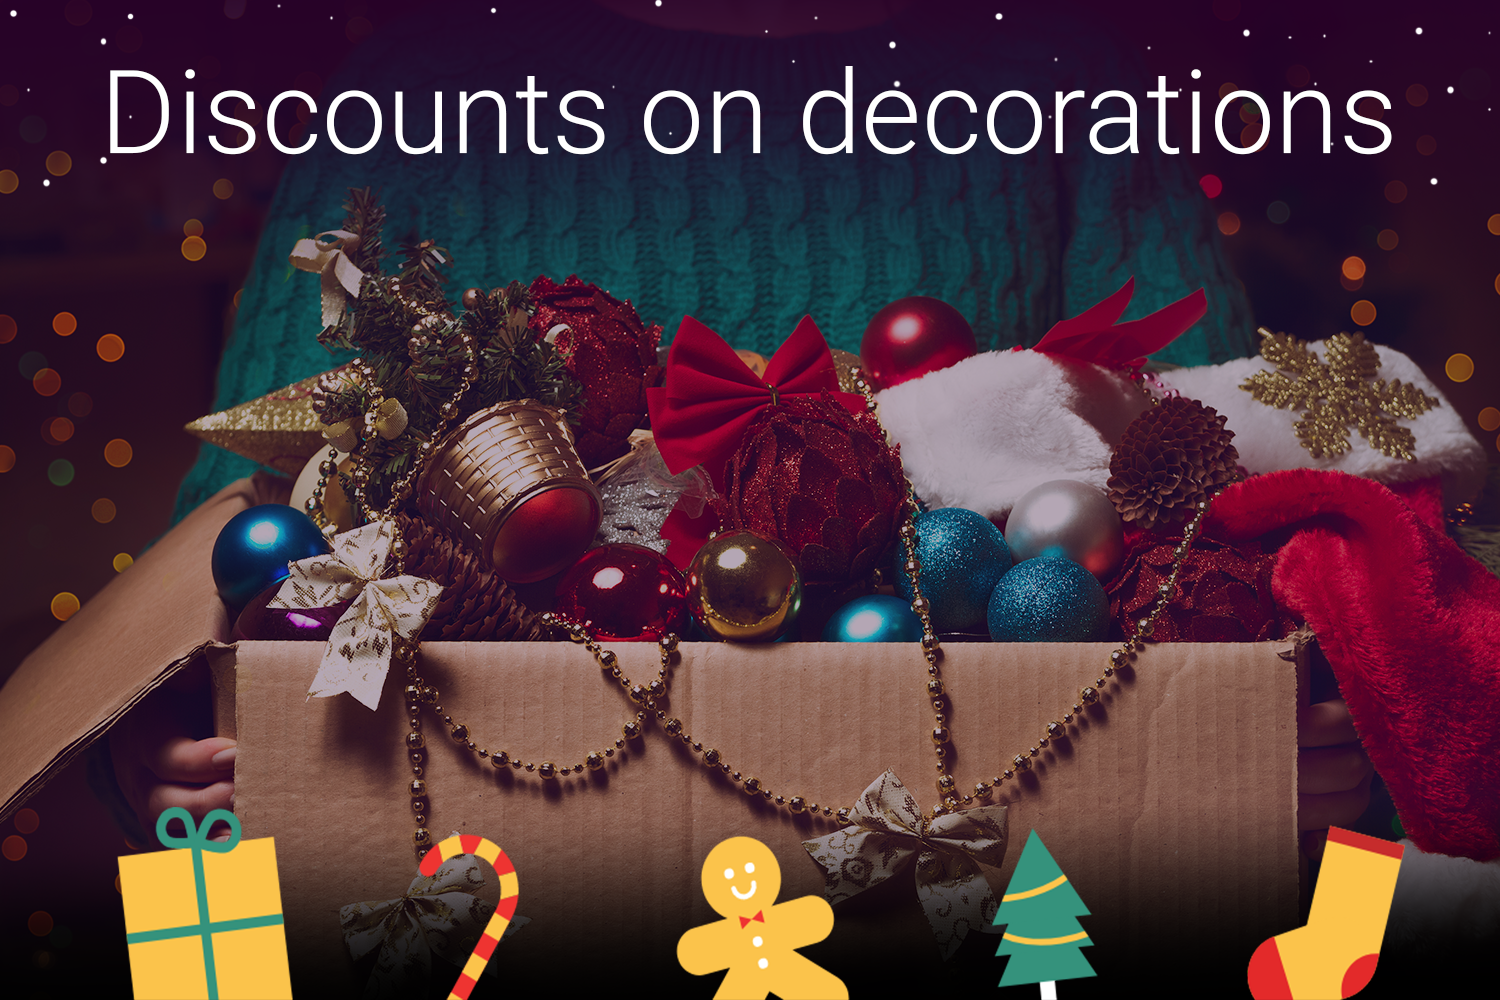 Deck the halls with decoration discounts